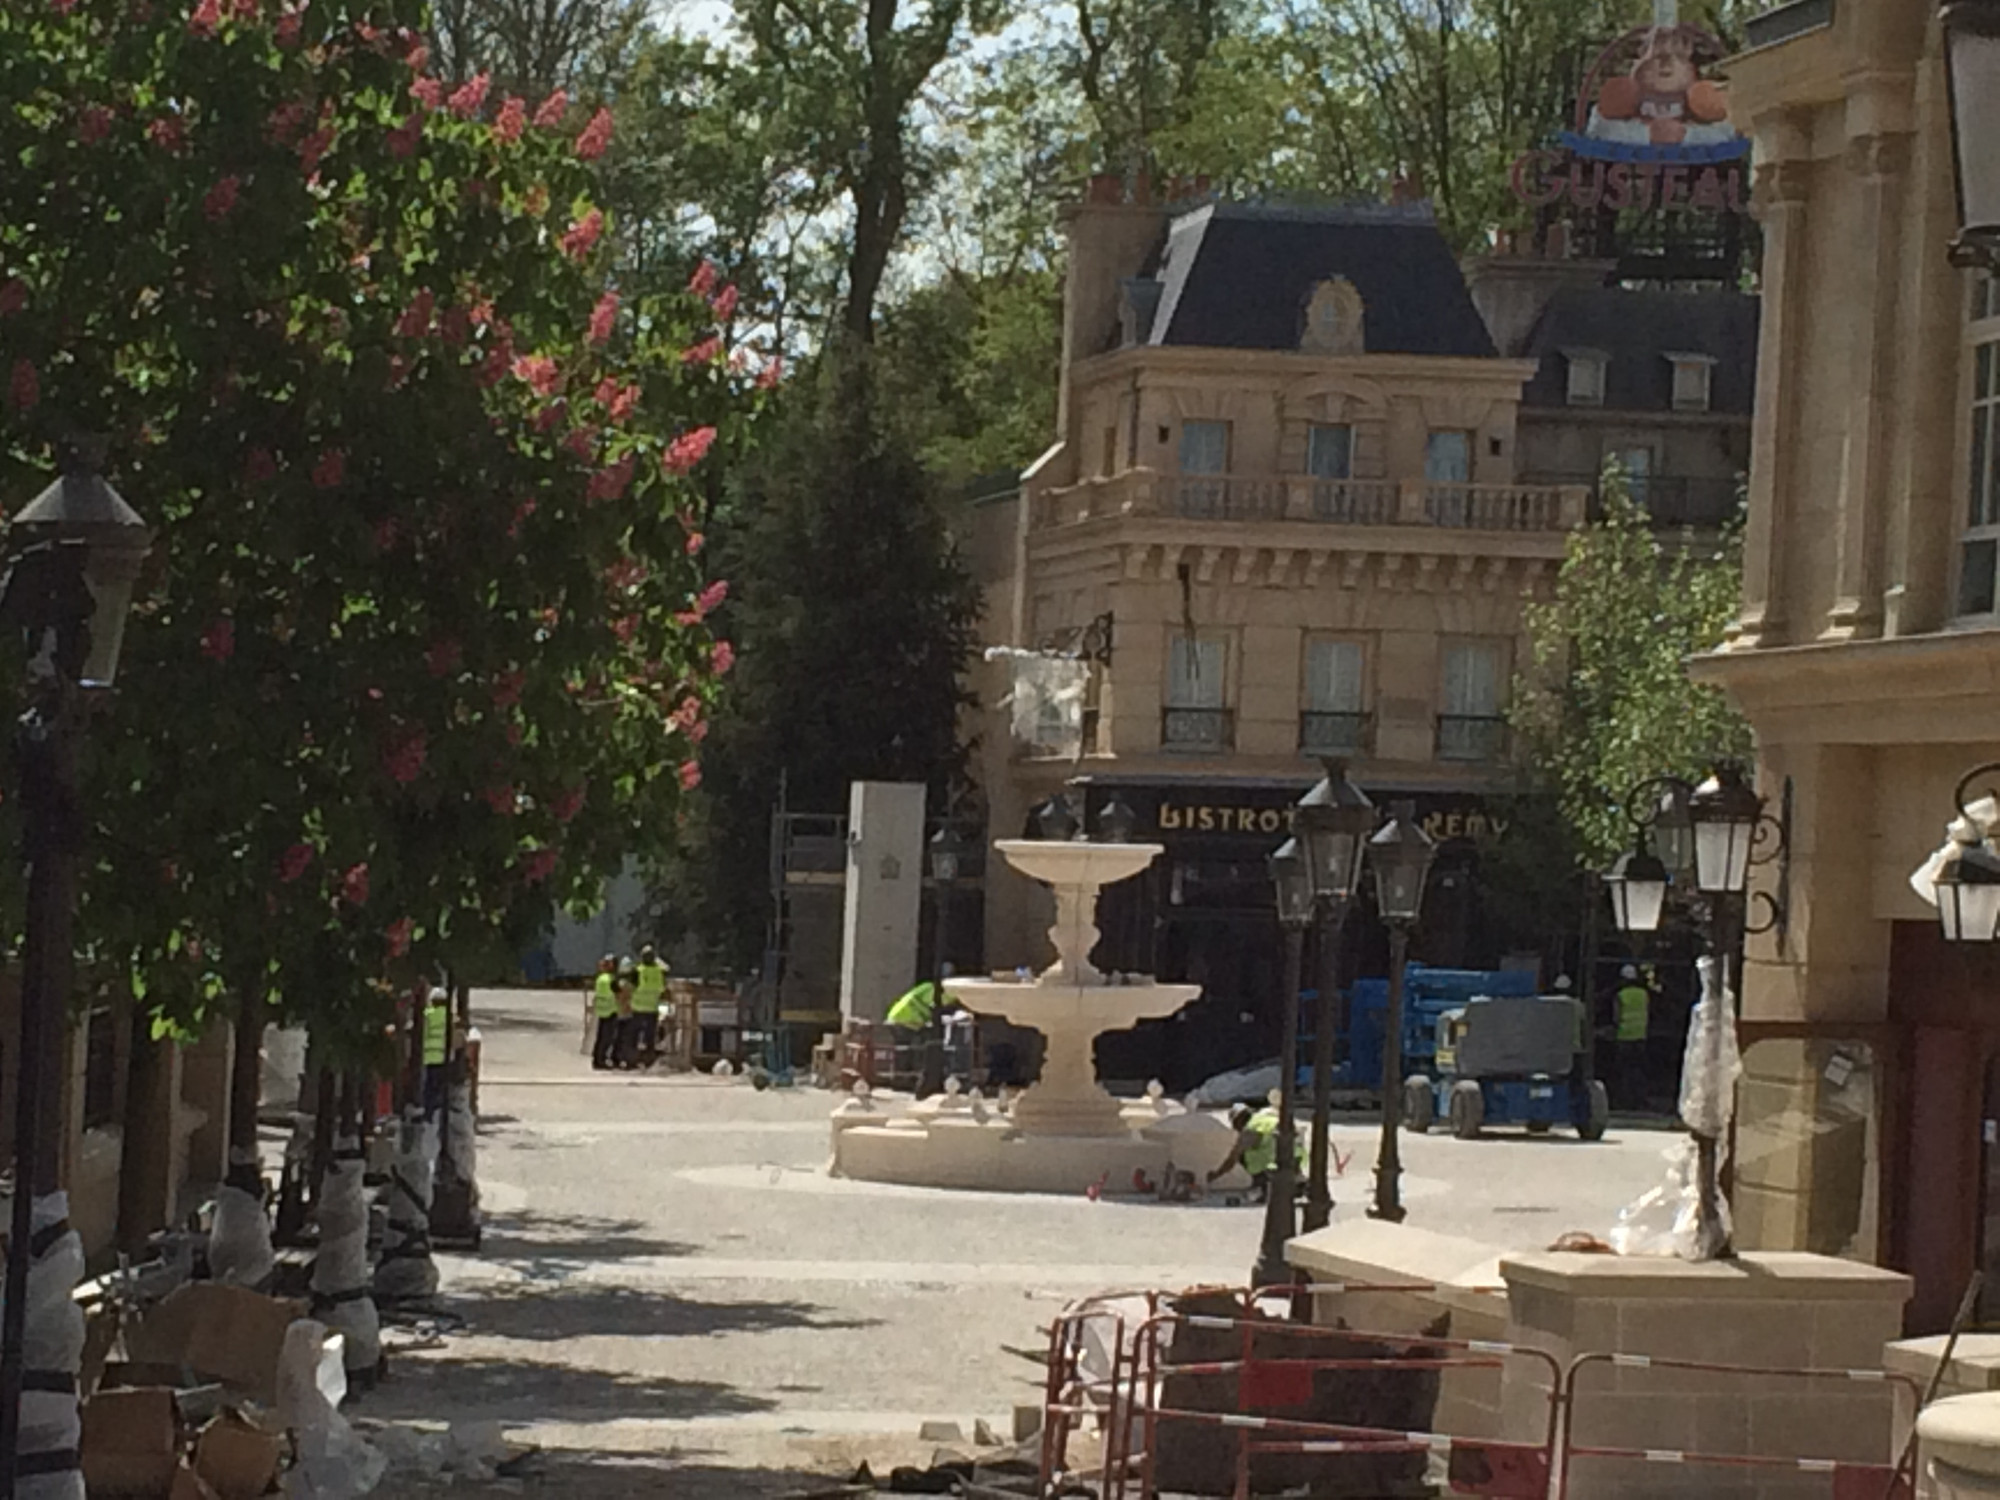 PHOTOS: Ratatouille Area of Disneyland Paris is Nearly Complete